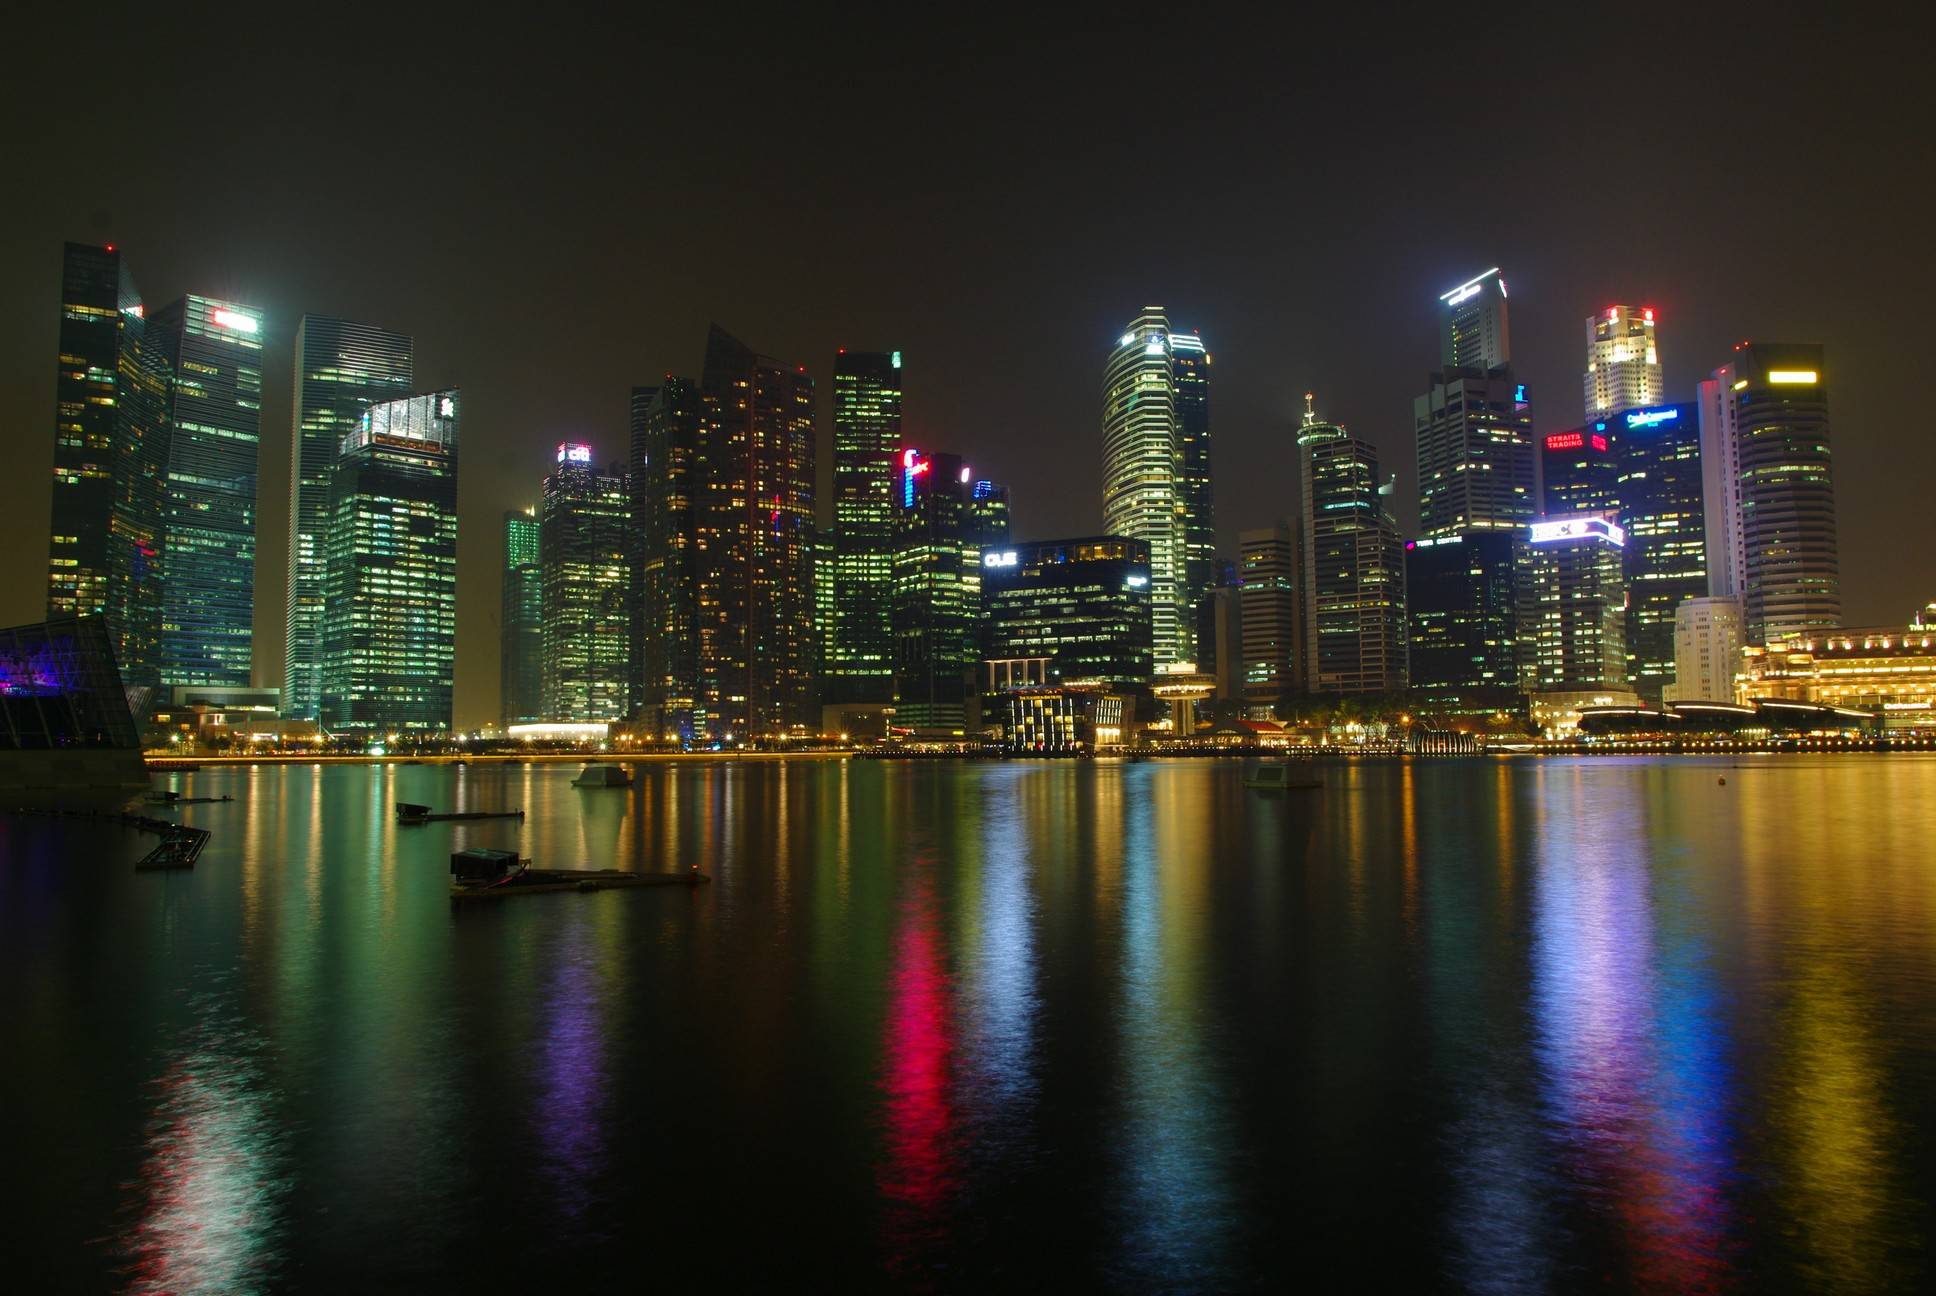 Photo 1: Meilleur rooftop de Singapour